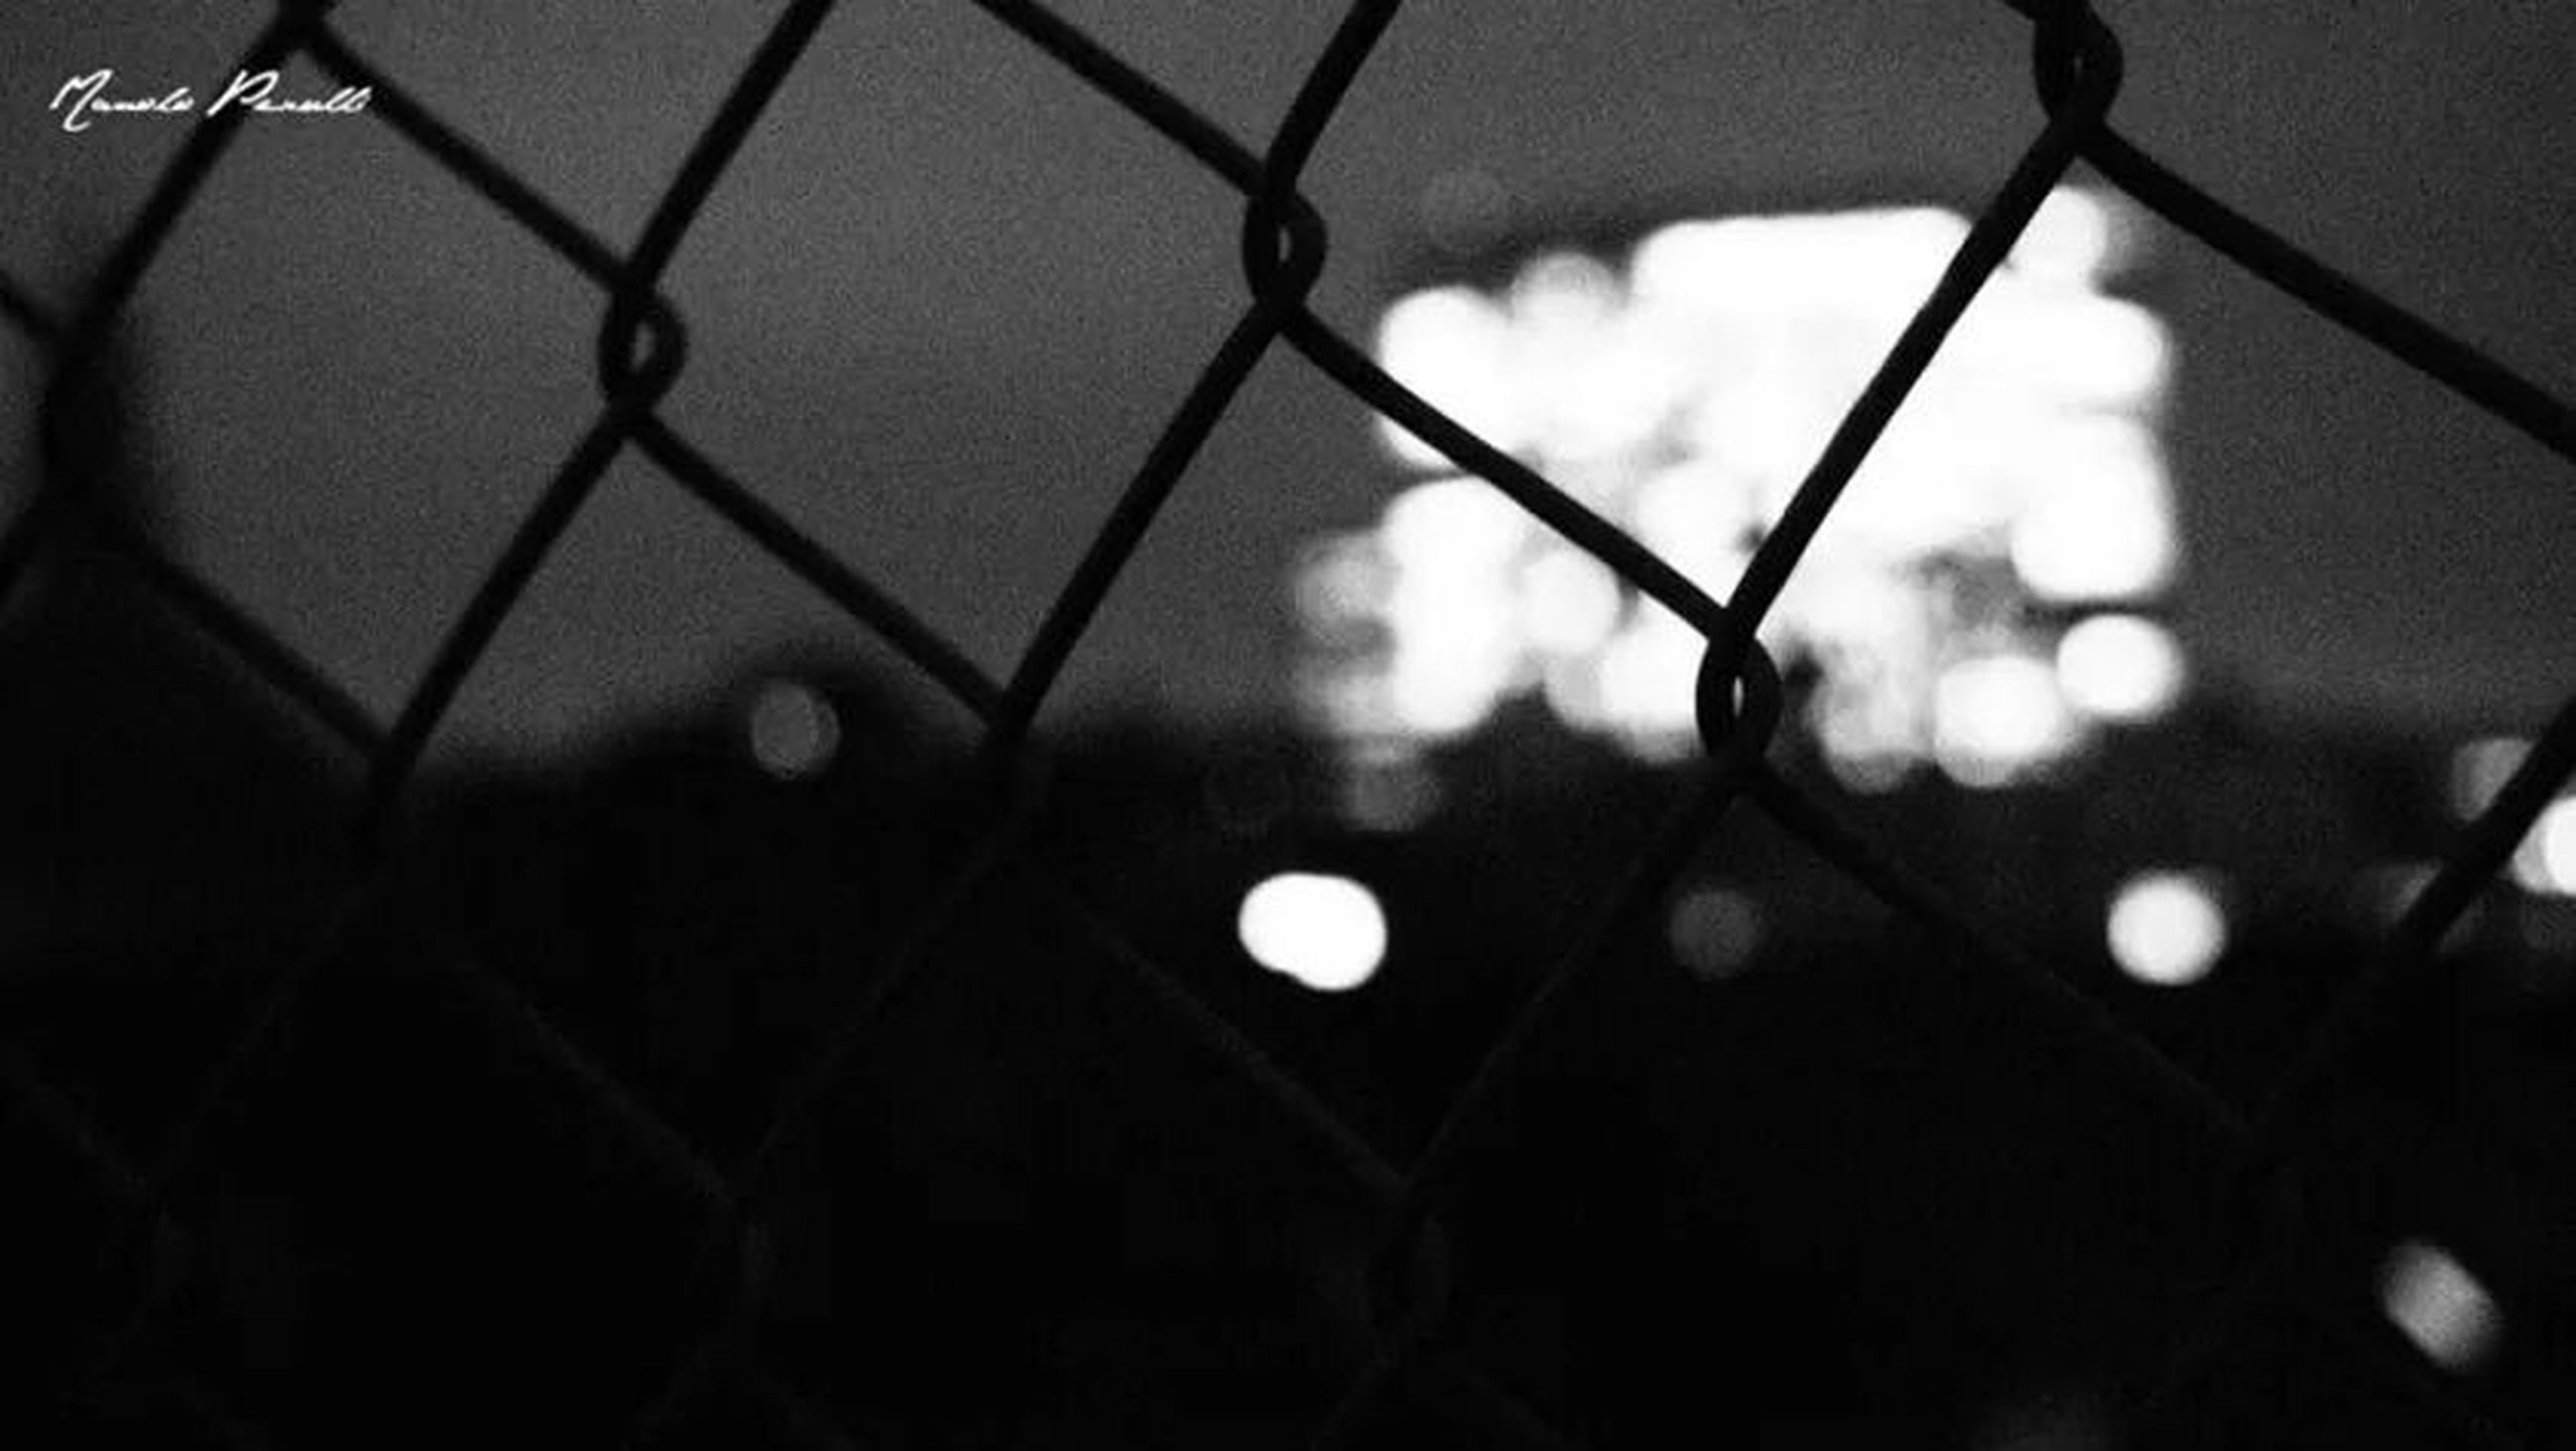 illuminated, chainlink fence, backgrounds, full frame, protection, safety, night, lighting equipment, fence, pattern, metal, low angle view, security, built structure, no people, focus on foreground, architecture, indoors, close-up, building exterior